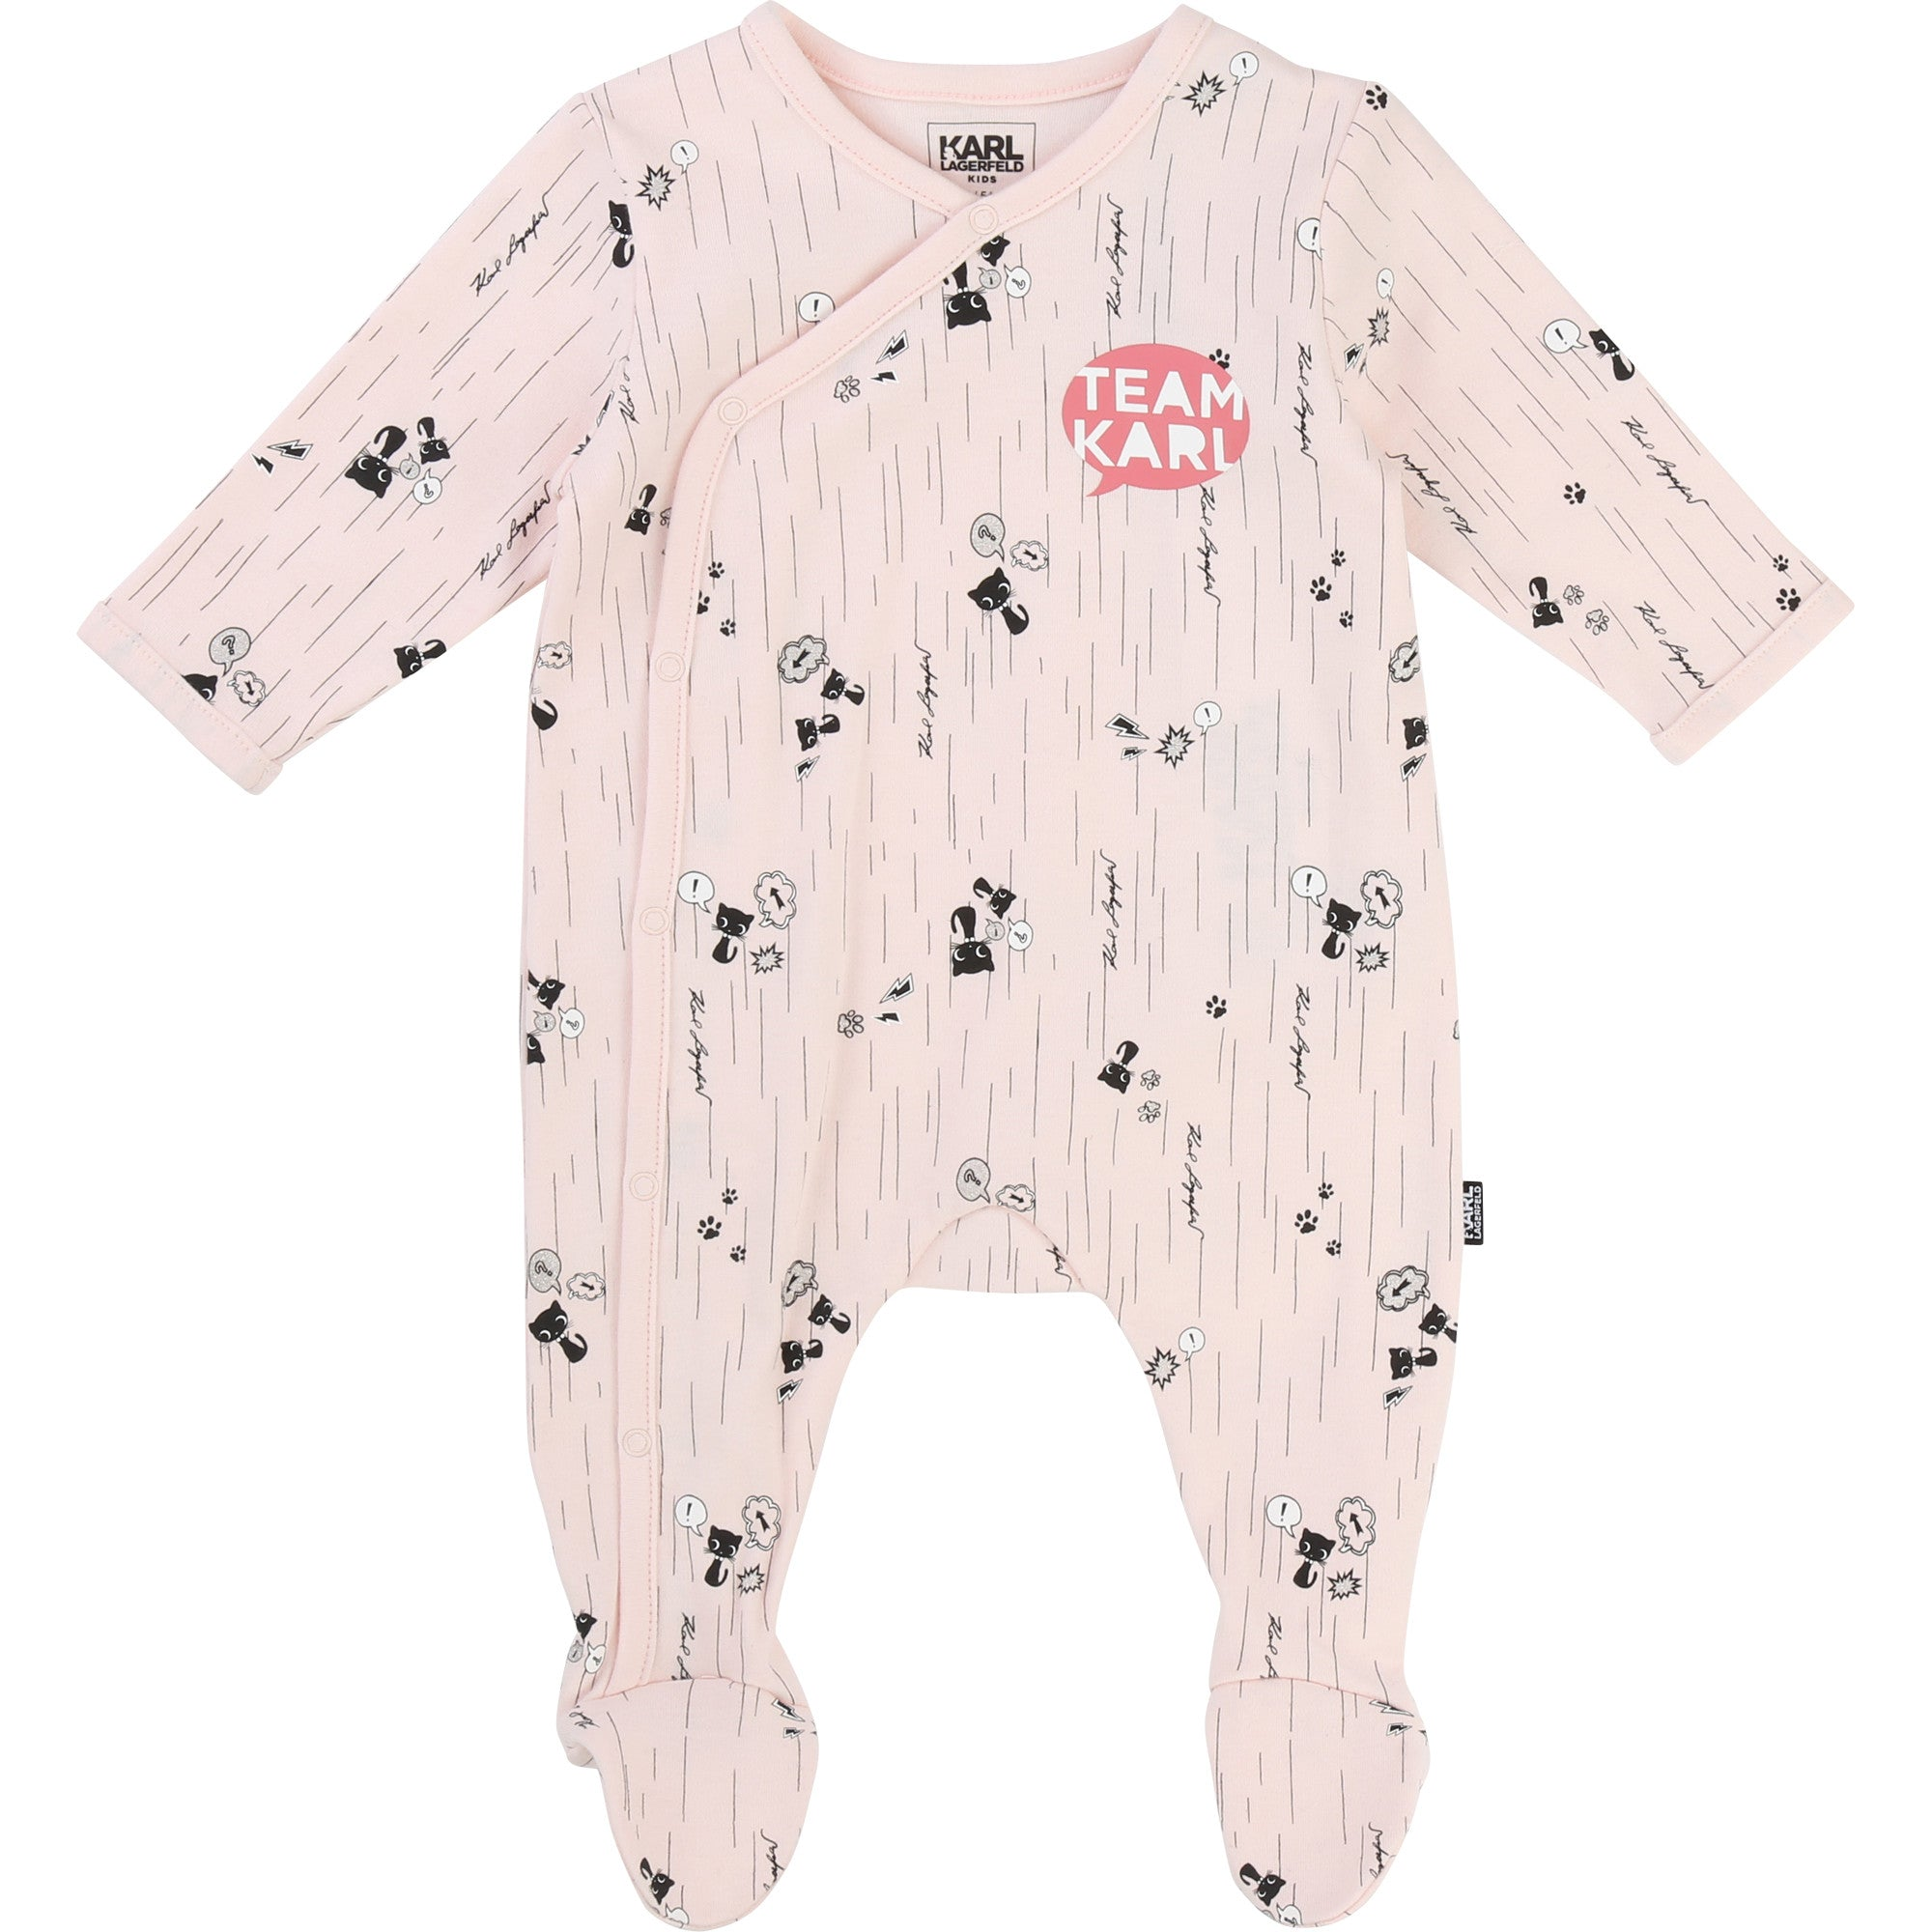 KARL LAGERFELD Kids baby sleeper Choupette at Bonjour Baby Baskets